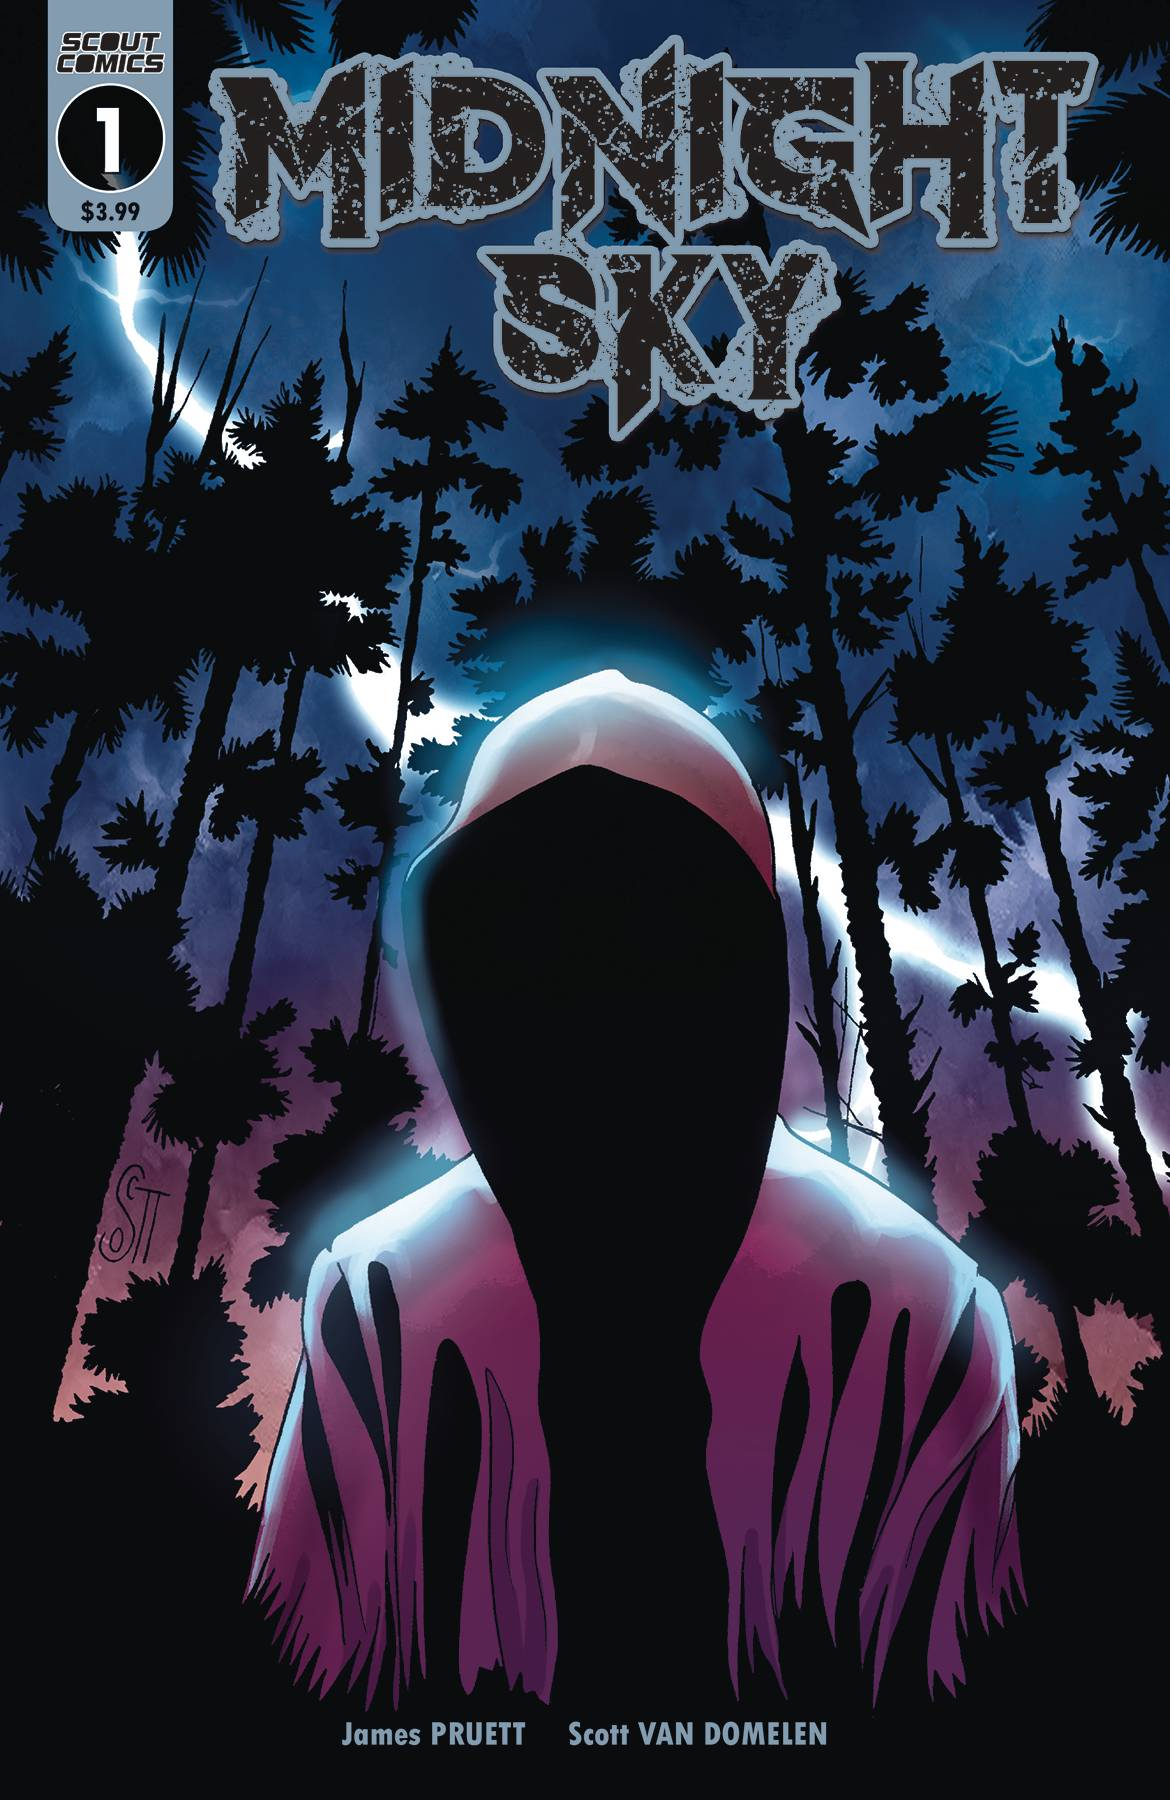 Advance Review: MIDNIGHT SKY #1 Creates An Intriguing Mystery And A Frightening World 1